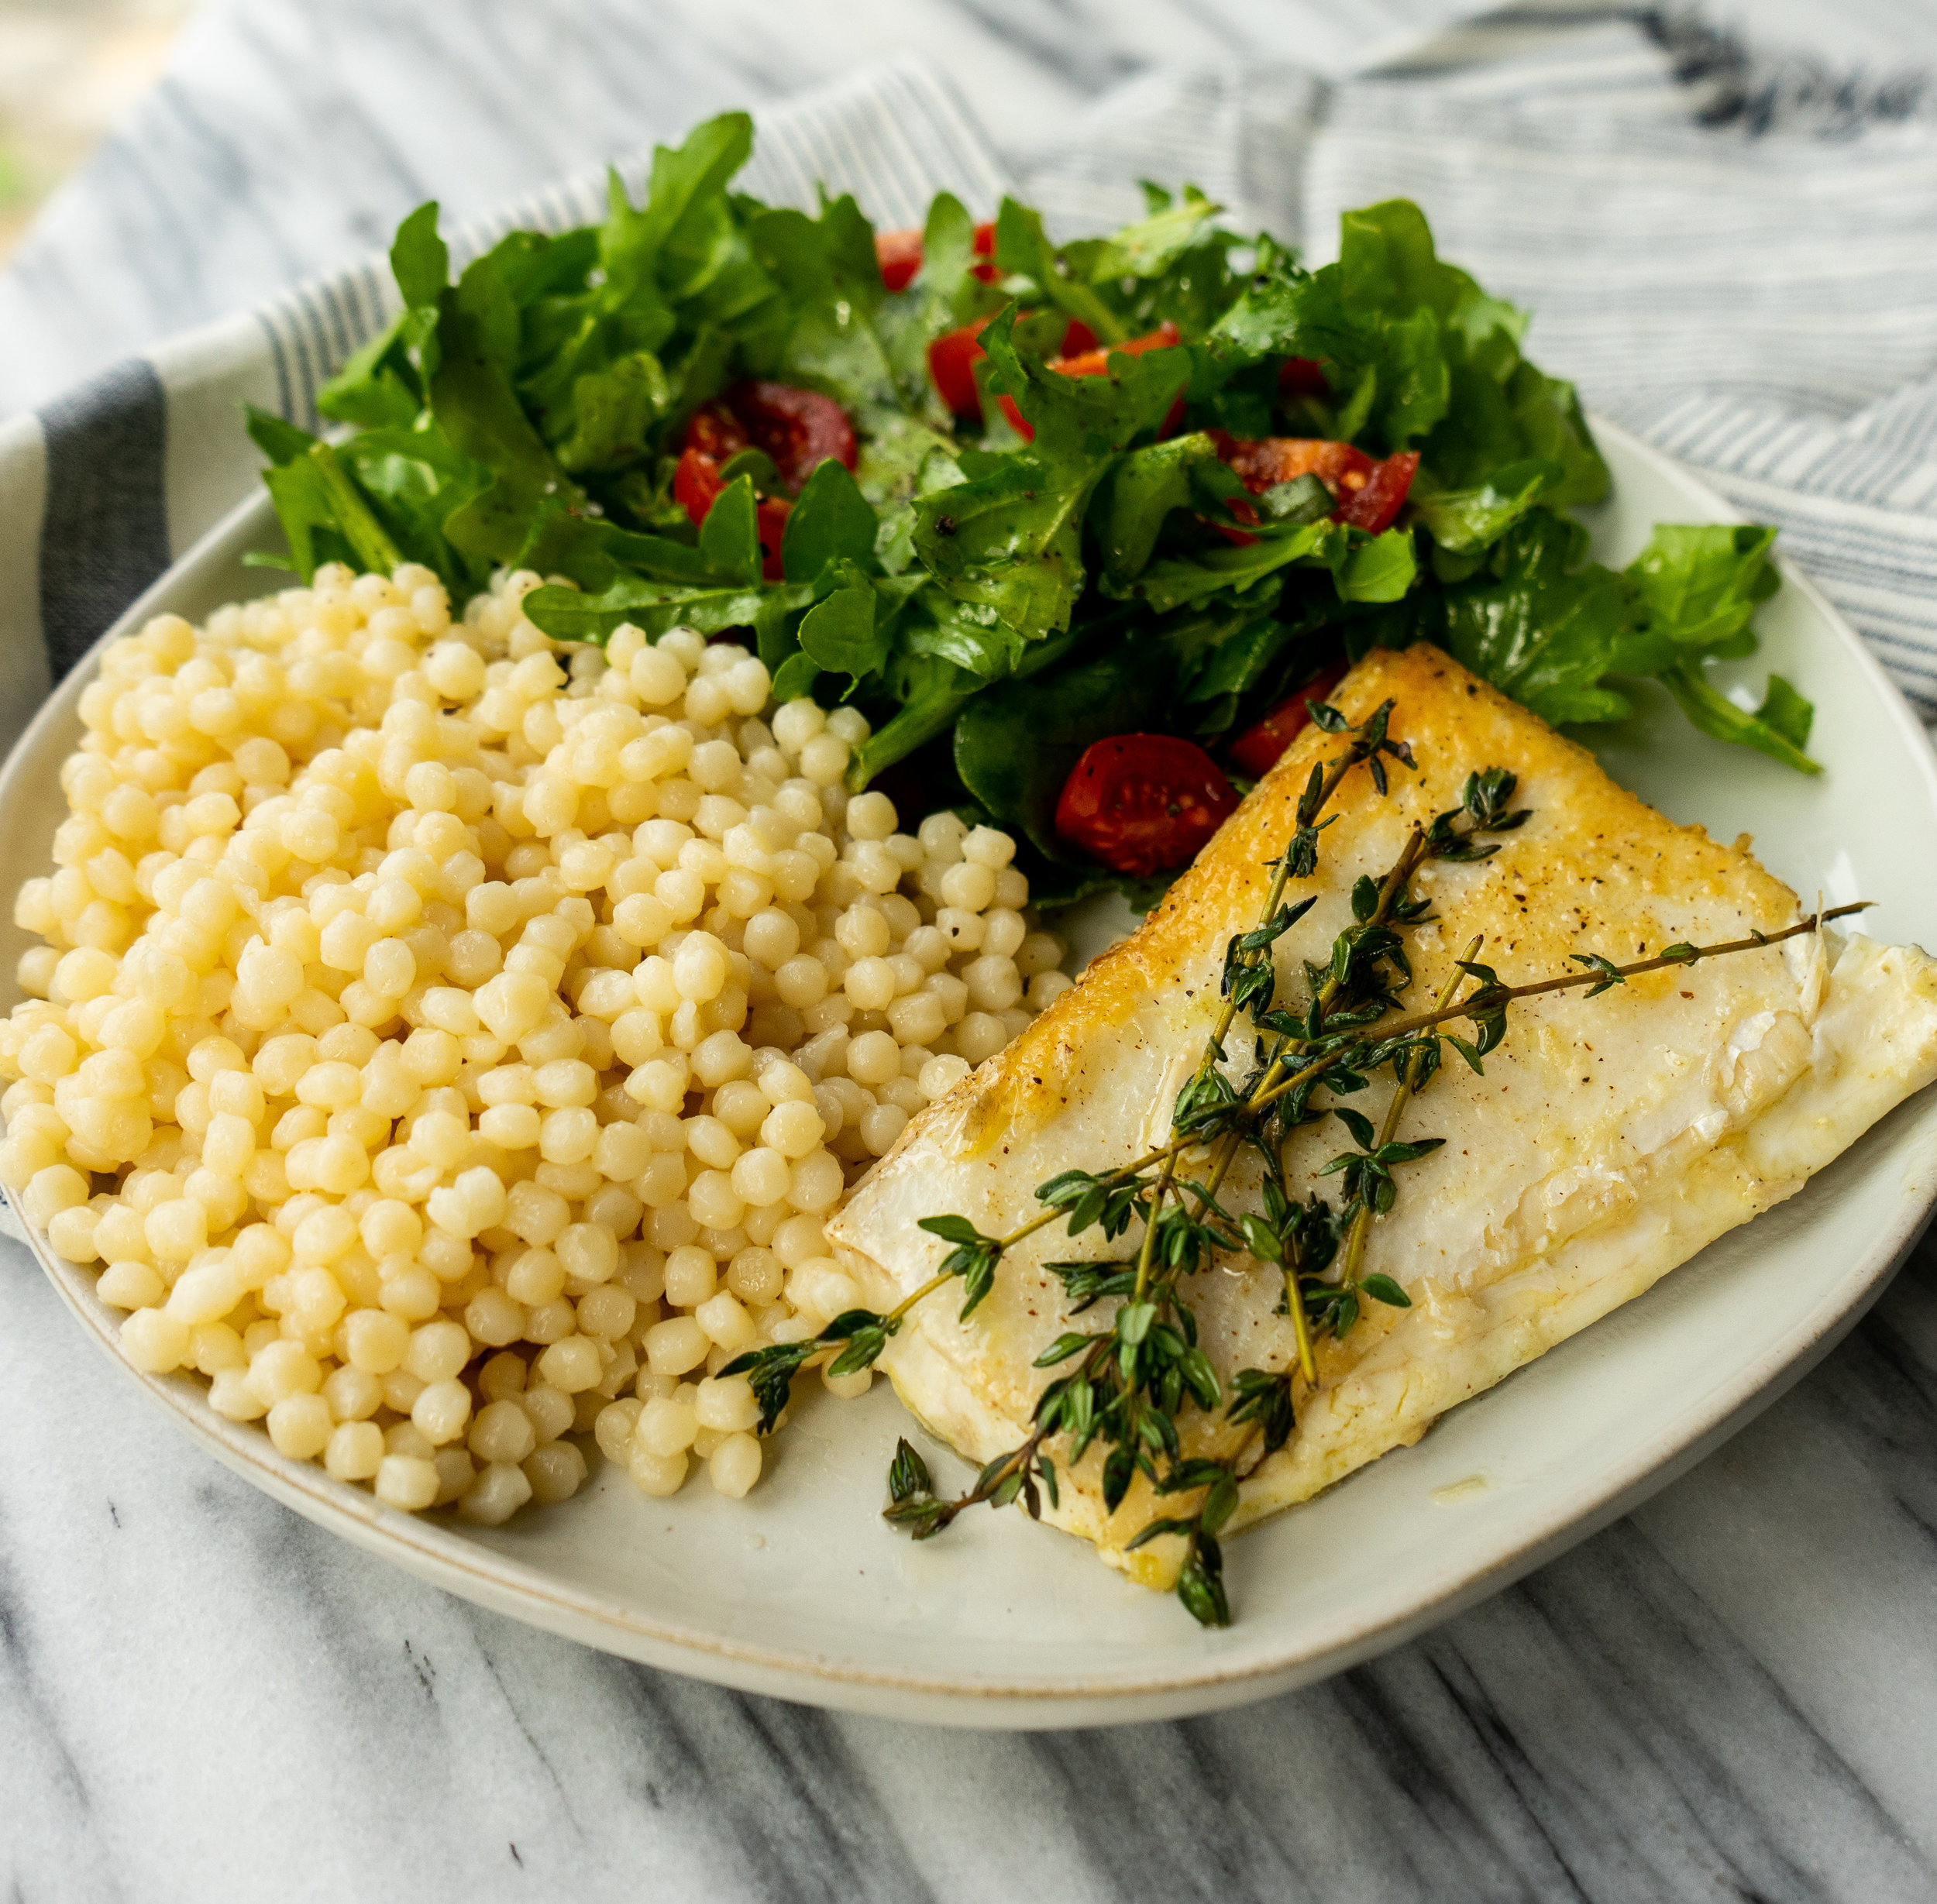 This pan roasted fish recipe is a perfect week night or date night dinner. Made with just a few simple ingredients this healthy meal comes together in less than 20 minutes.